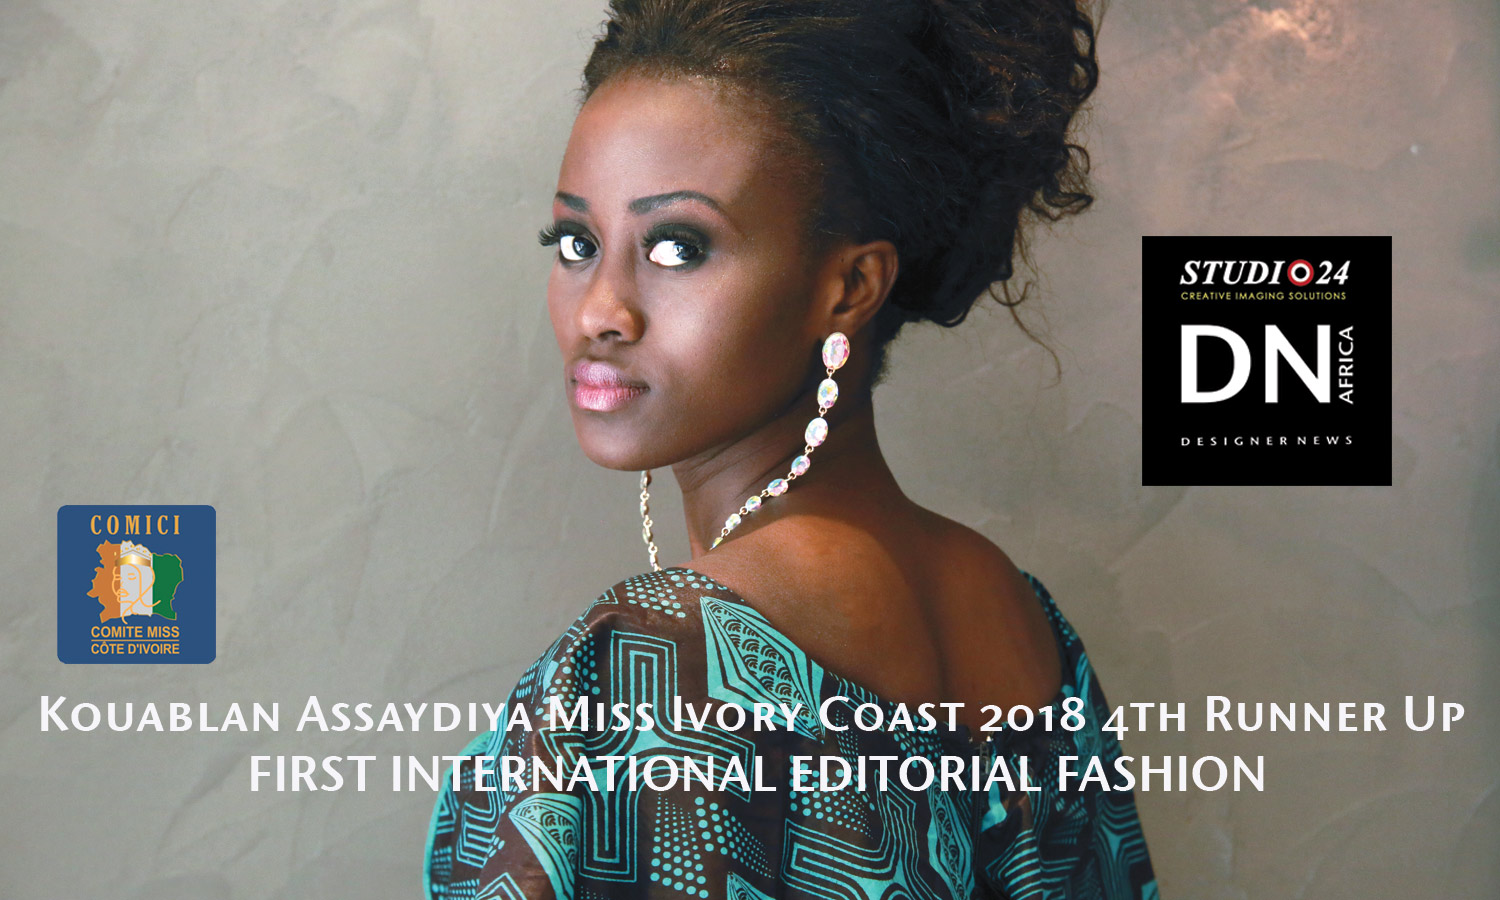 MISS COTE D'IVOIRE 2018 -AFRICAN FASHION STYLE MAGAZINE - MISS IVORY COAST 2018 - MISS MARIE-DANIELLE SUY FATEM - 4th RUNNER UP Kouablan-Assaydiya - DN AFRICA - STUDIO 24 NIGERIA - CHEVEUX CHERIE